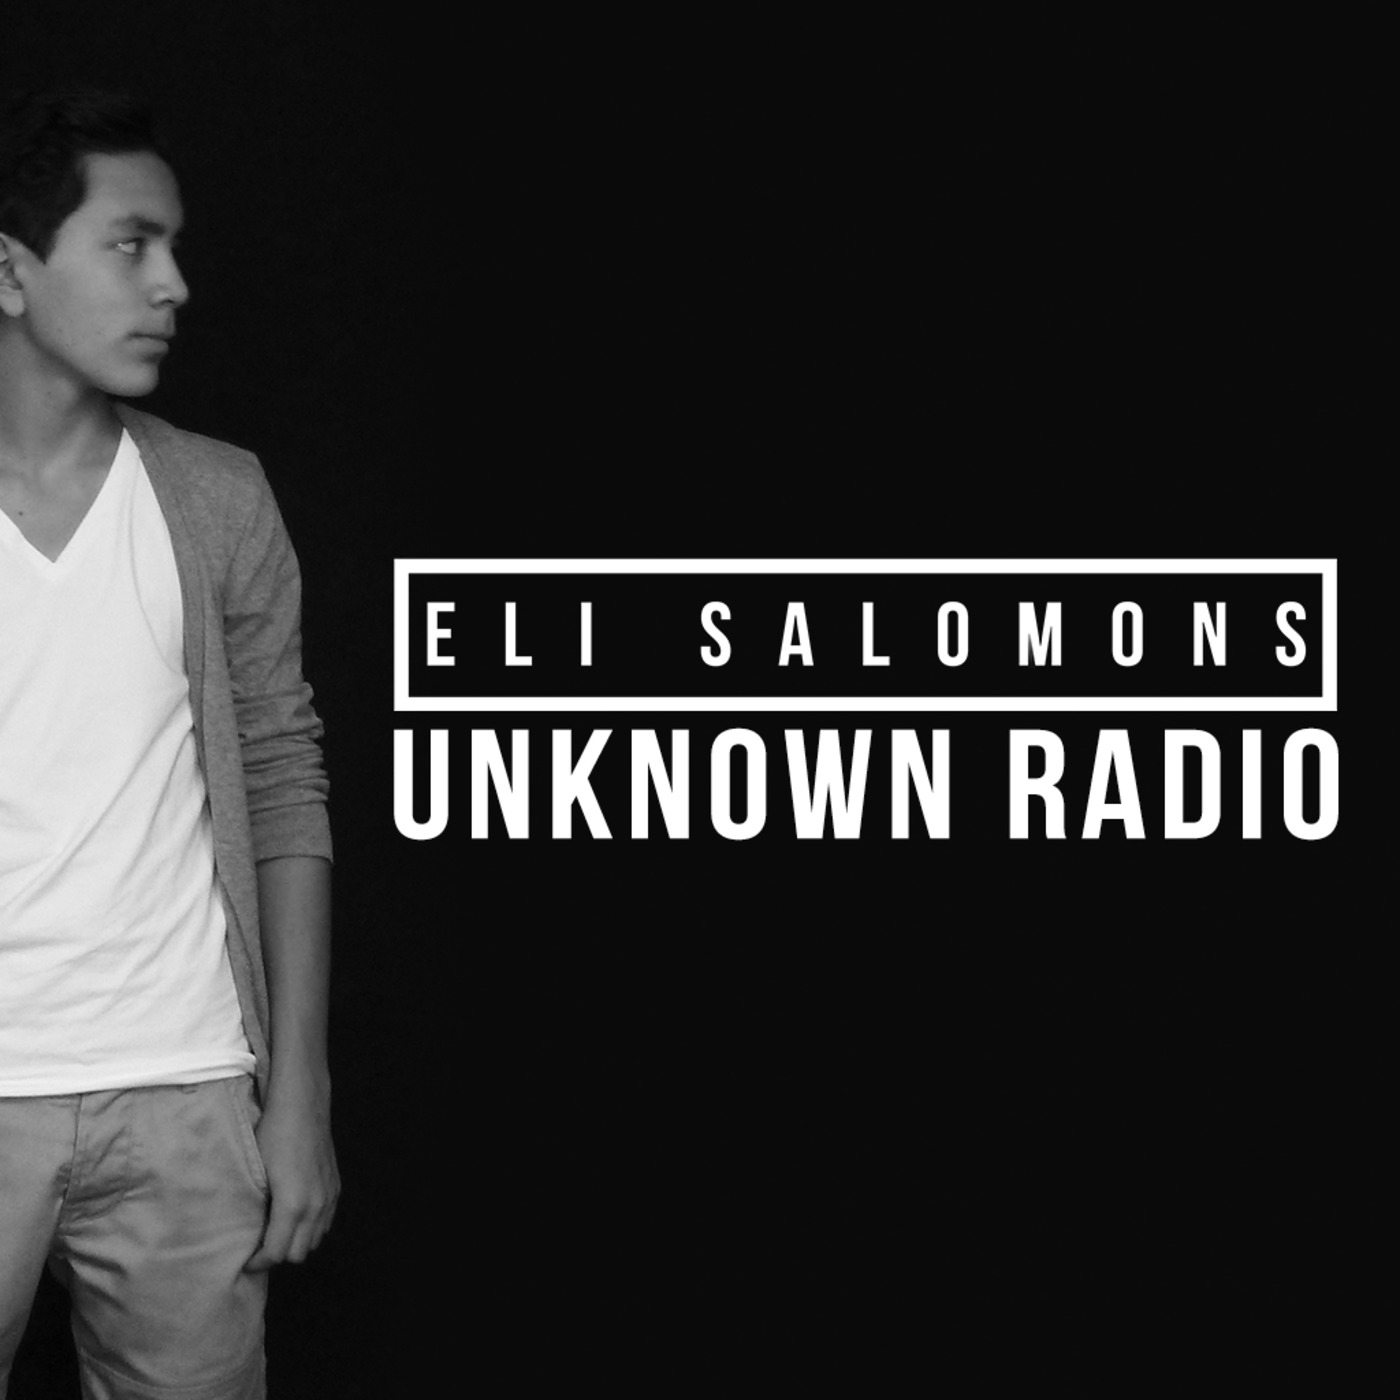 Eli Salomons: Unknown Radio